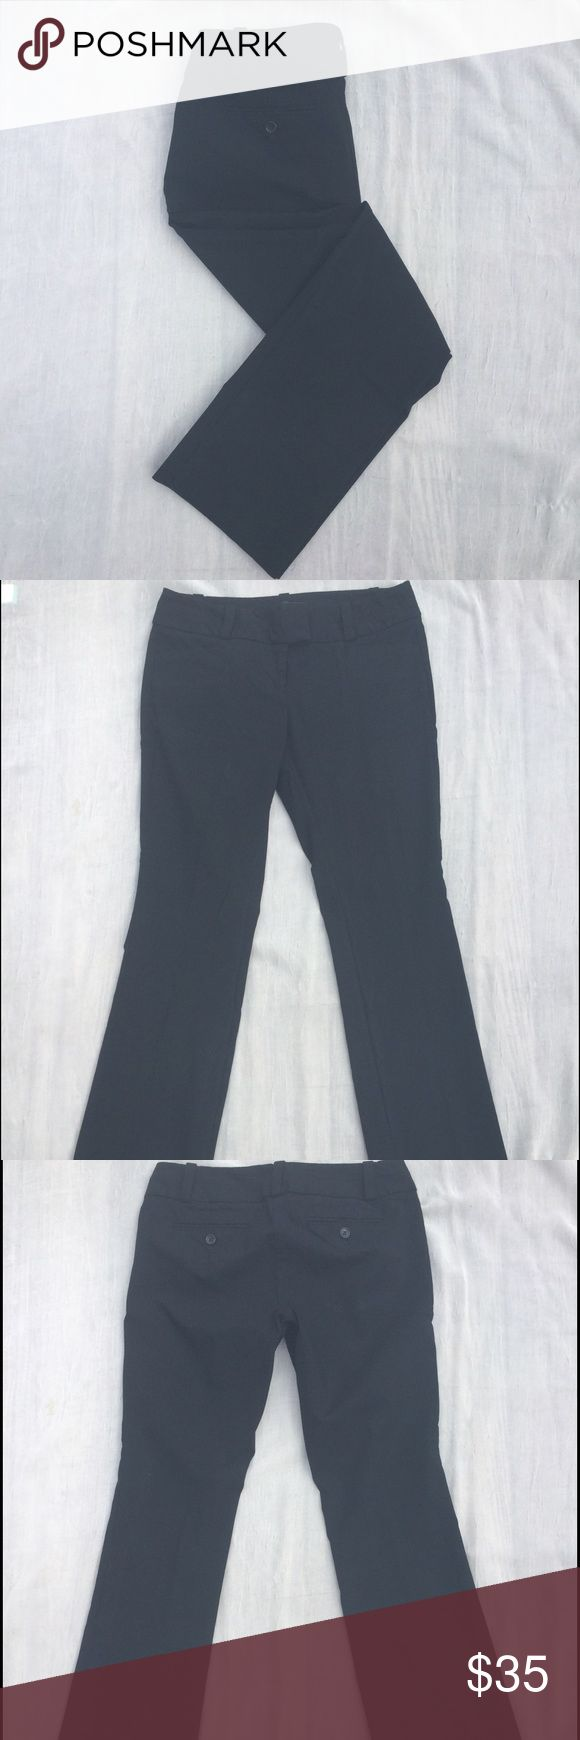 """The Limited Exact Stretch boot cut pants The Limited Exact Stretch boot cut pants in black • excellent condition • 30"""" inseam The Limited Pants Boot Cut & Flare"""